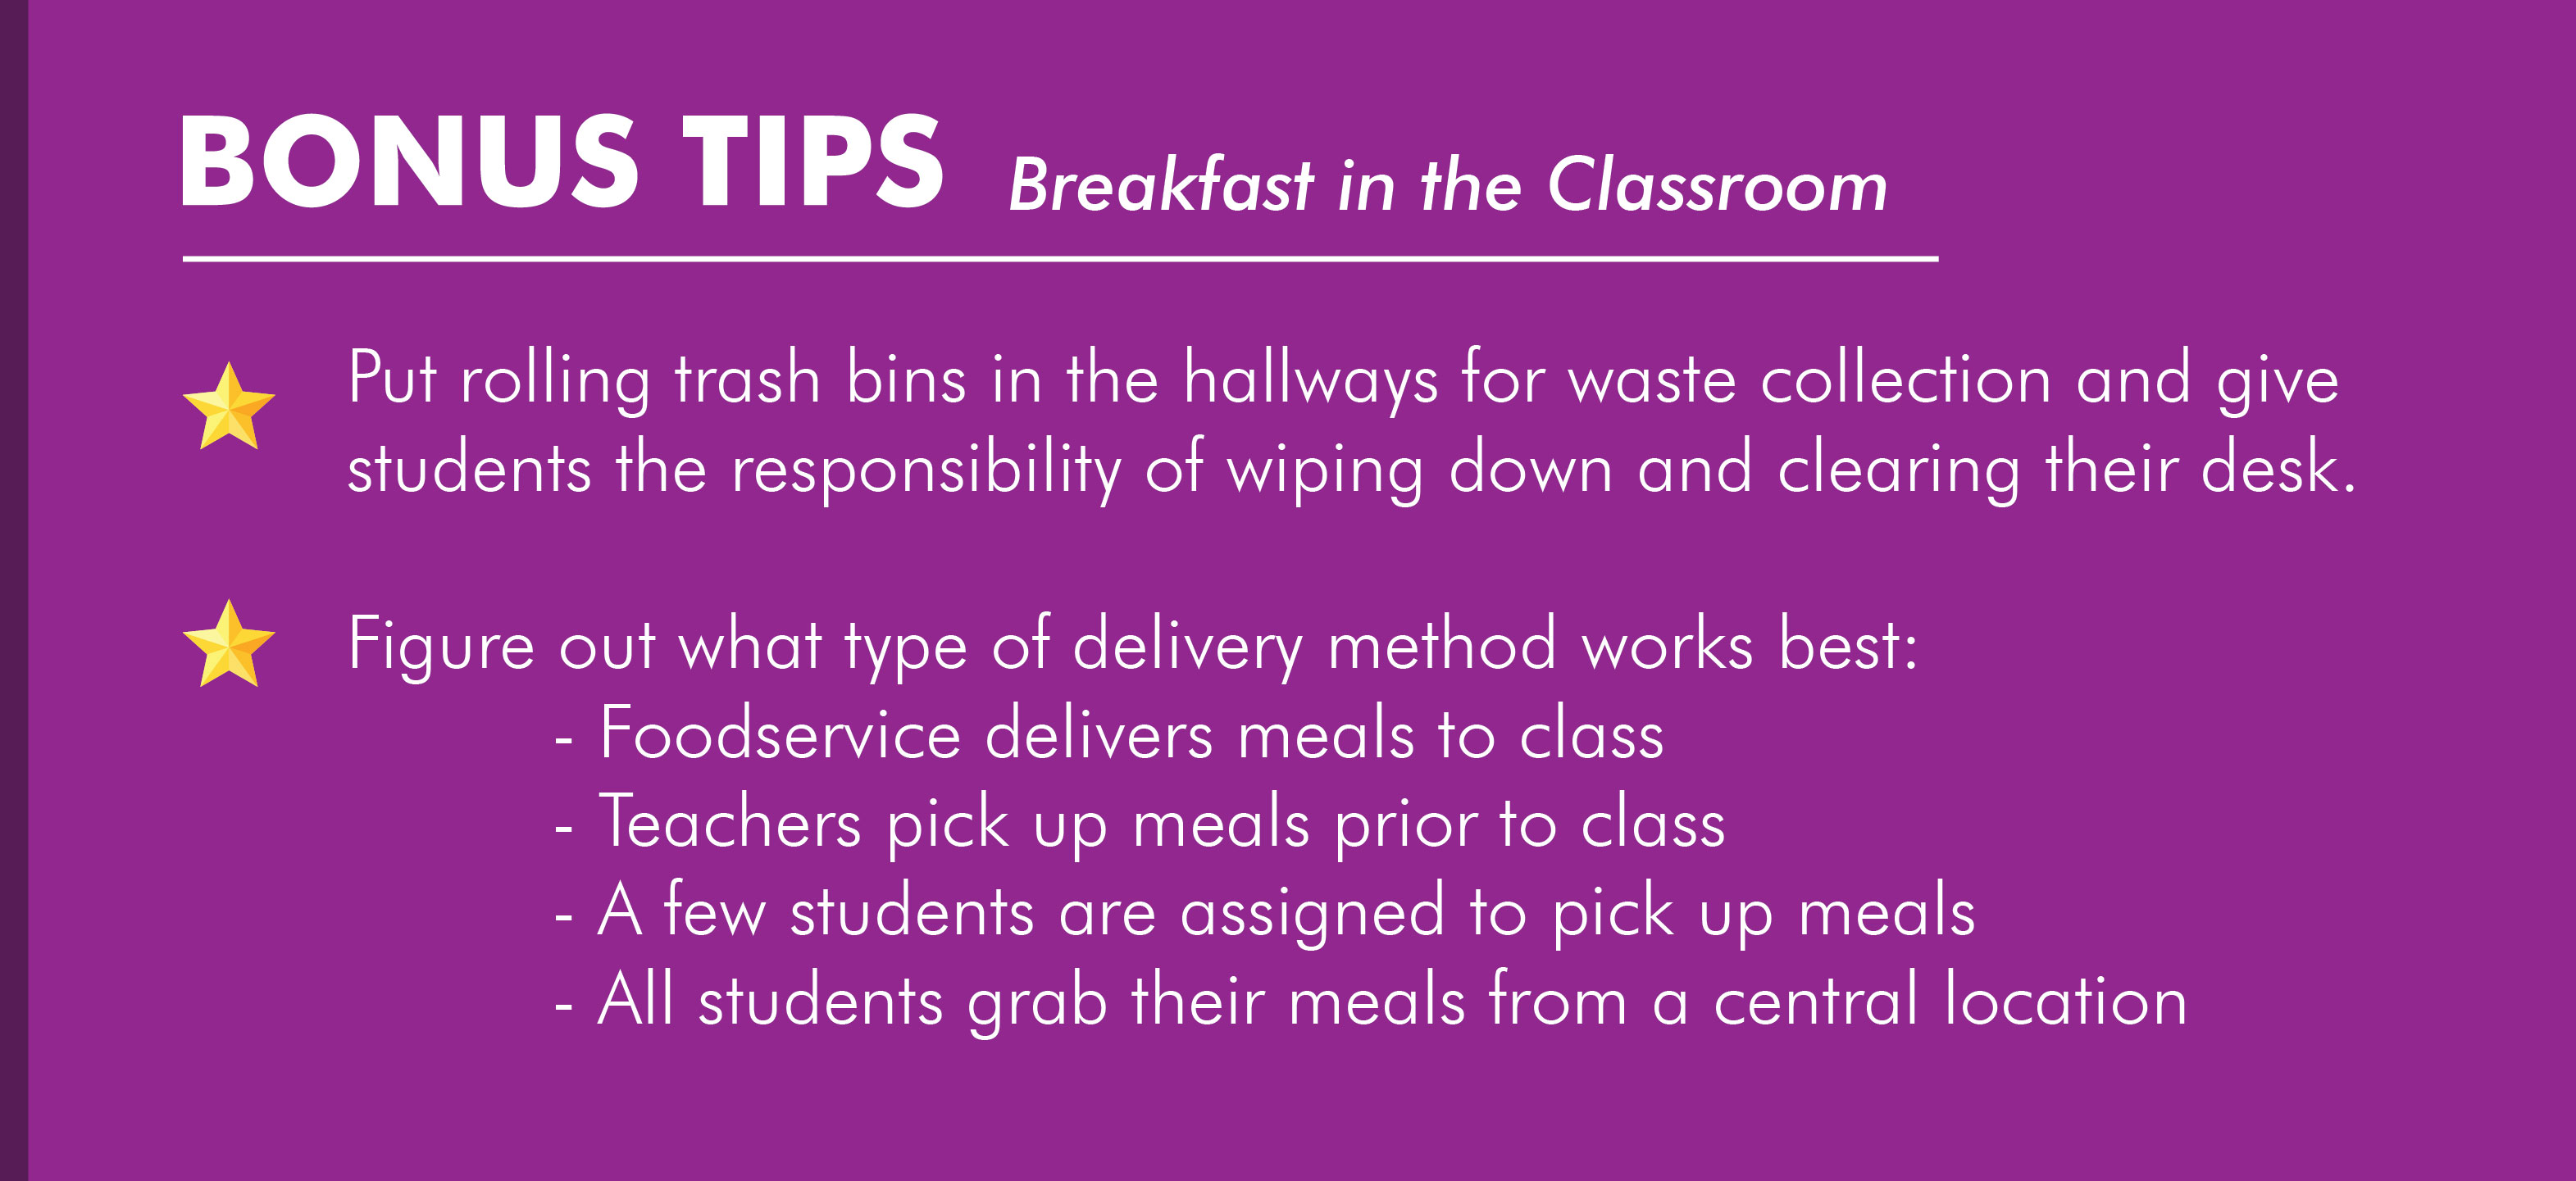 School Breakfast in the Classroom